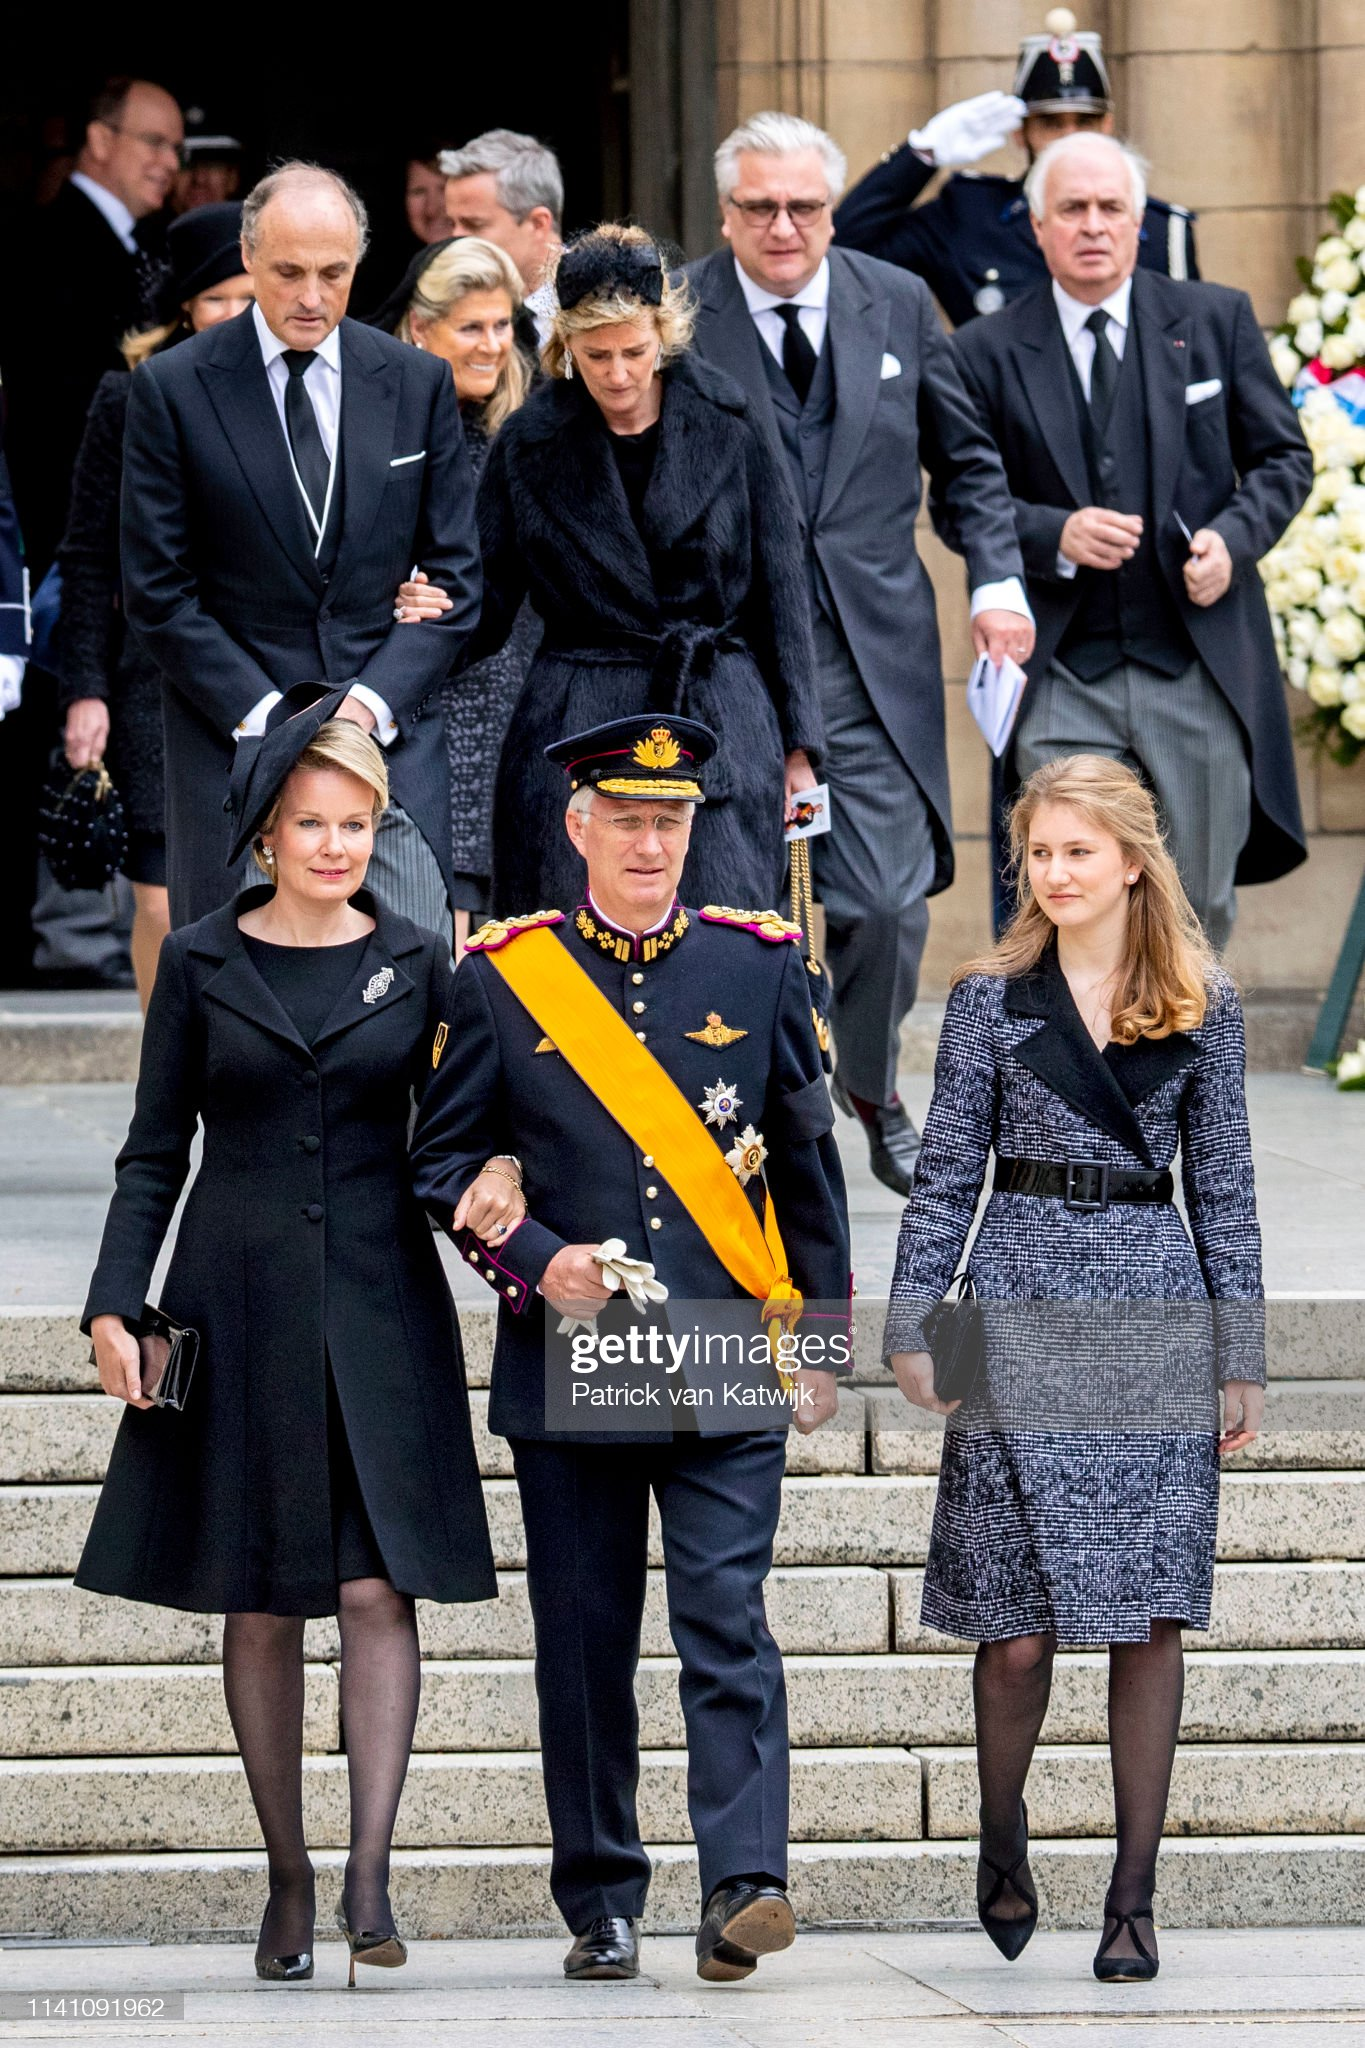 Похороны Великого Герцога Жана https://media.gettyimages.com/photos/king-philippe-of-belgium-queen-mathilde-of-belgium-and-princess-of-picture-id1141091962?s=2048x2048